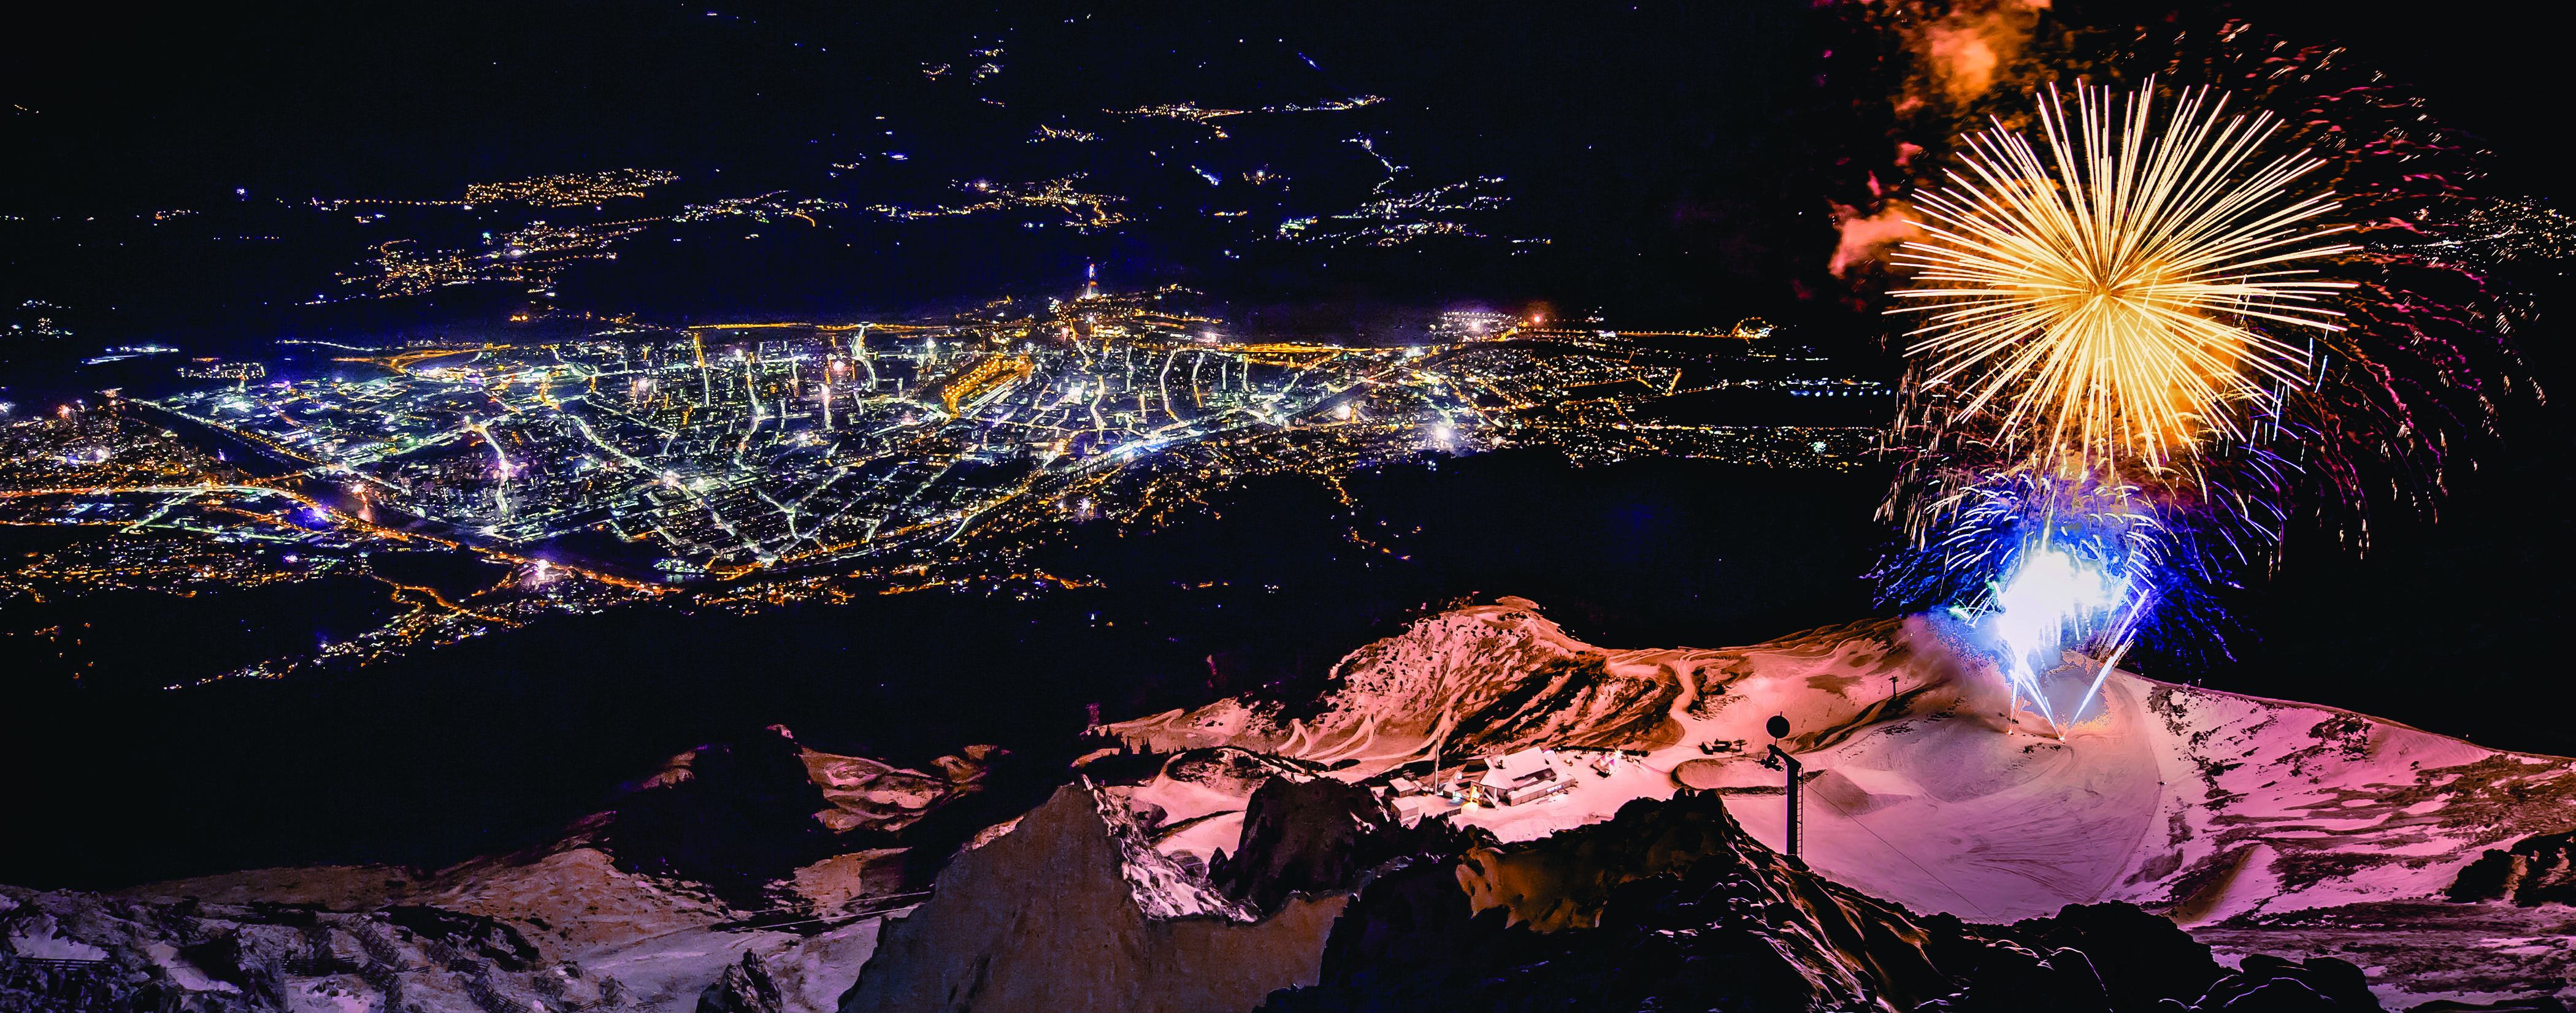 Fireworks exploding over a mountain at night with a lit city below